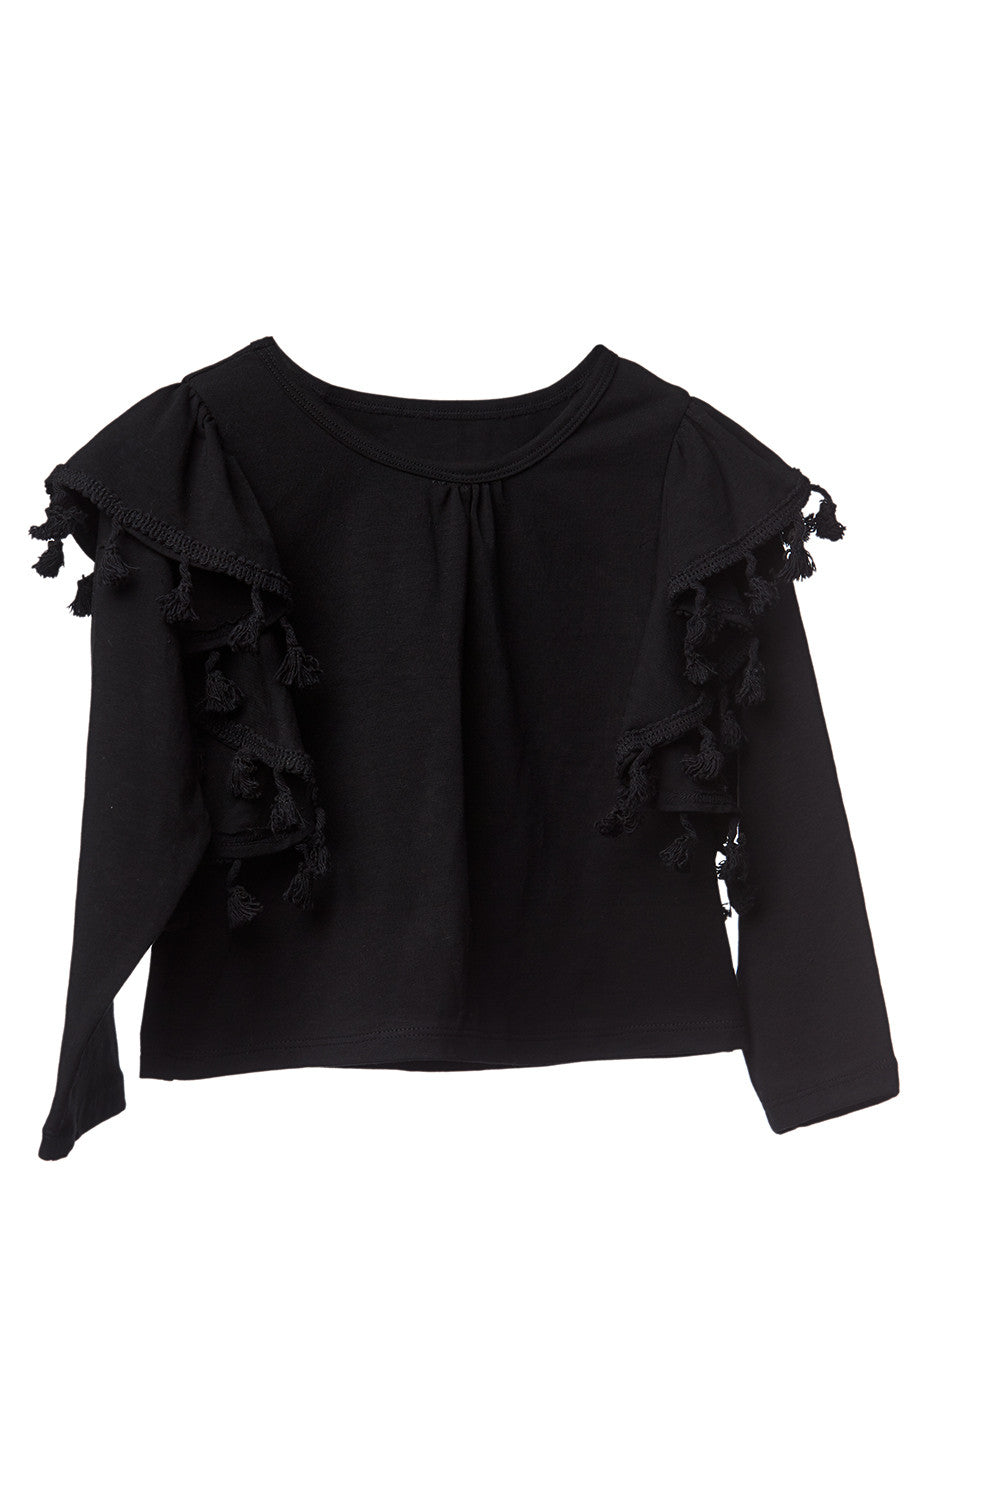 AW17 Mii love Mu Wing Top Black